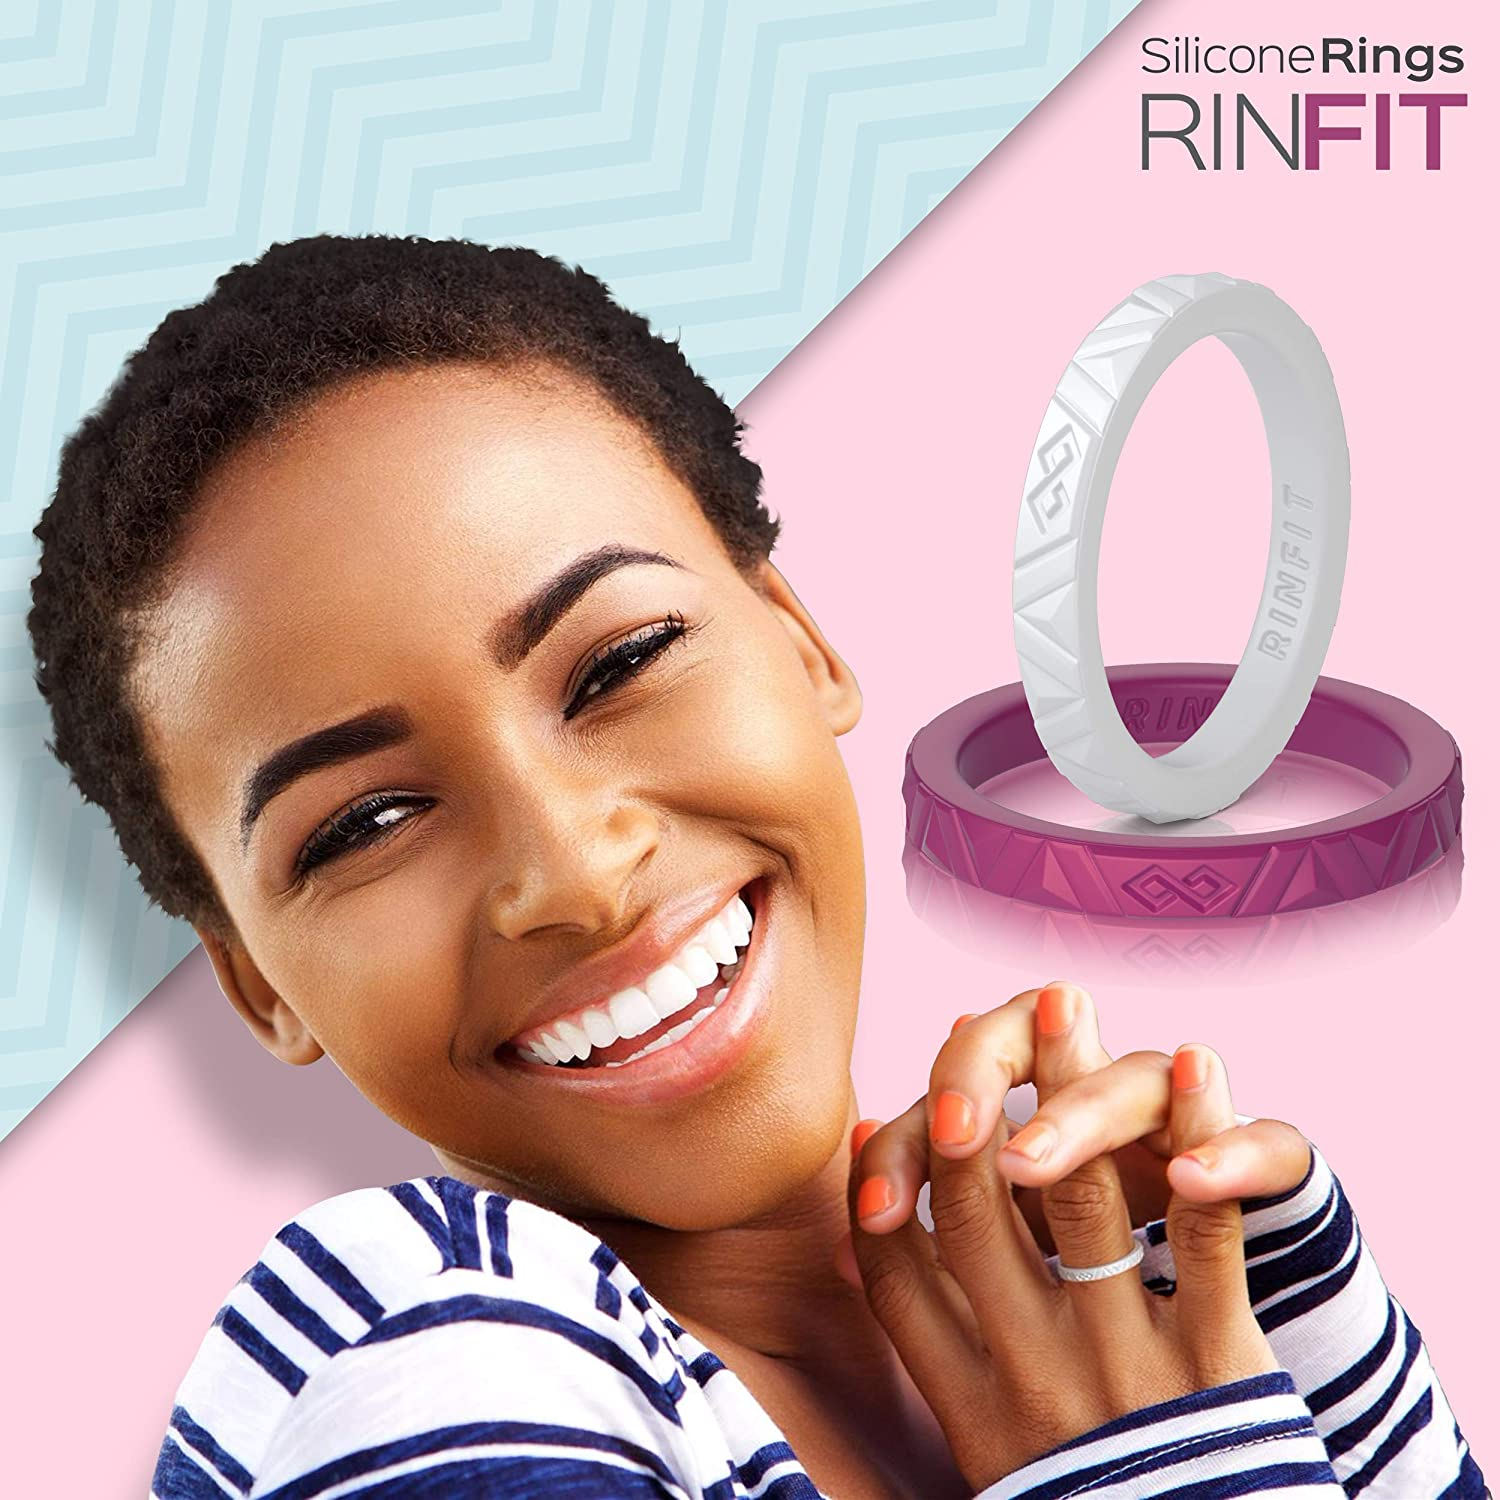 Rinfit Silicone Wedding Ring for Women - Designed, Silicone Rubber Band. Unique Sets of Stackable Engagement Rings. U.S. Design Patent